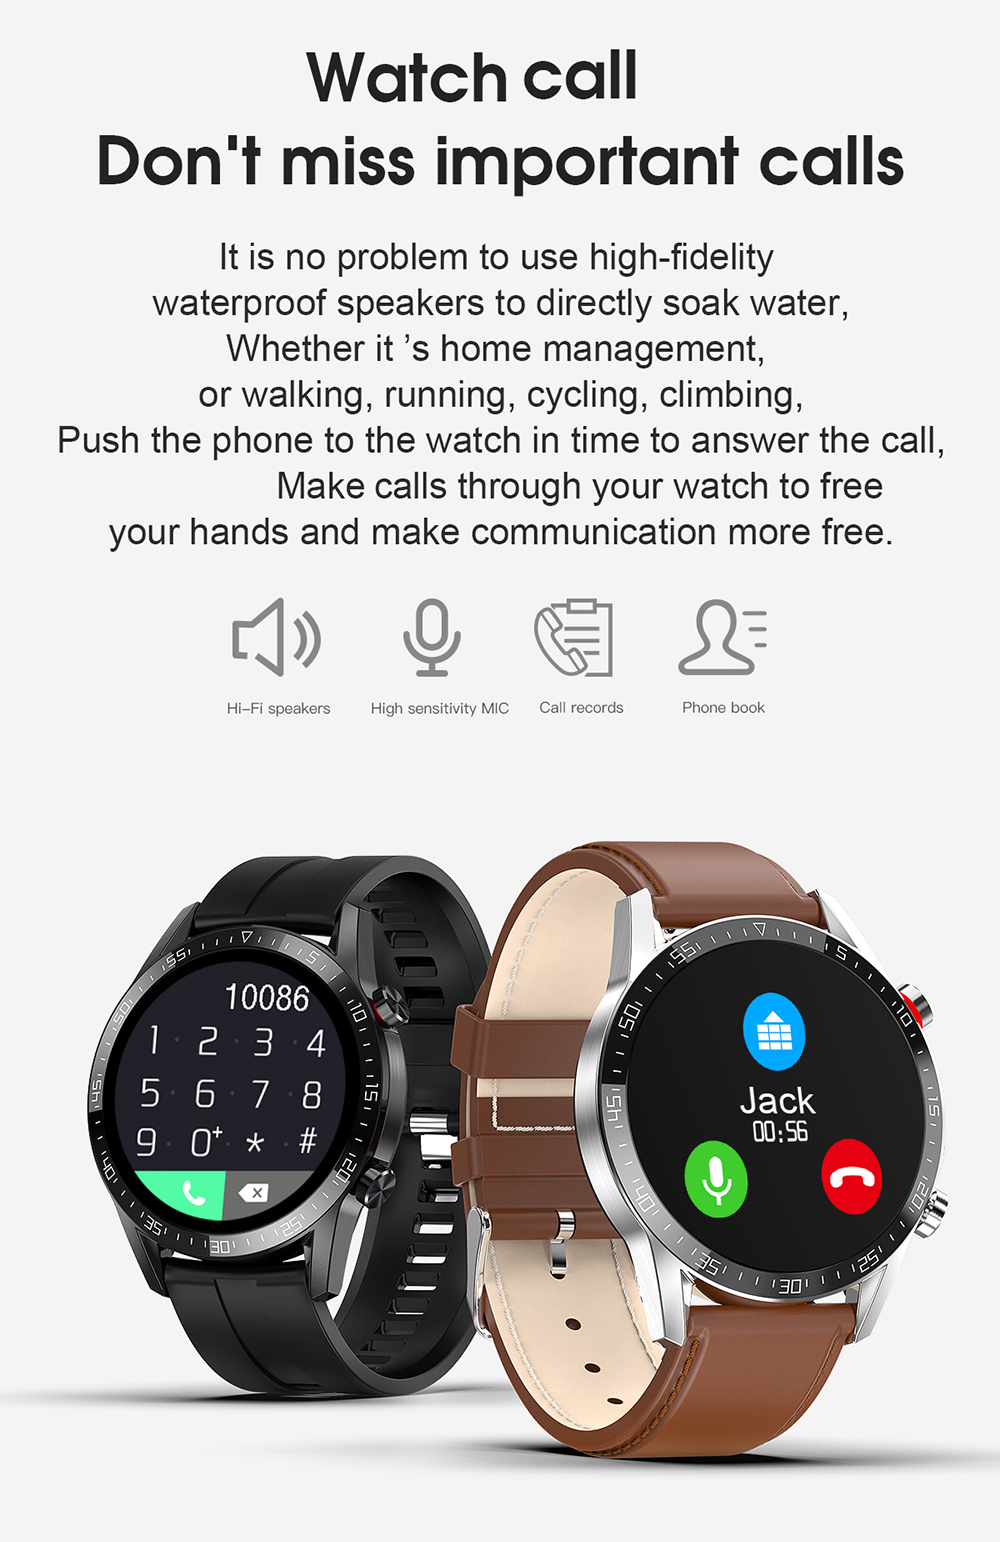 Ha534182c3efd4c4a889239f3f3876206D For Phone Xiaomi Android IOS Reloj Inteligente Hombre Smartwatch Men 2021 Android IP68 Smartwatch Answer Call Smart Watch Man